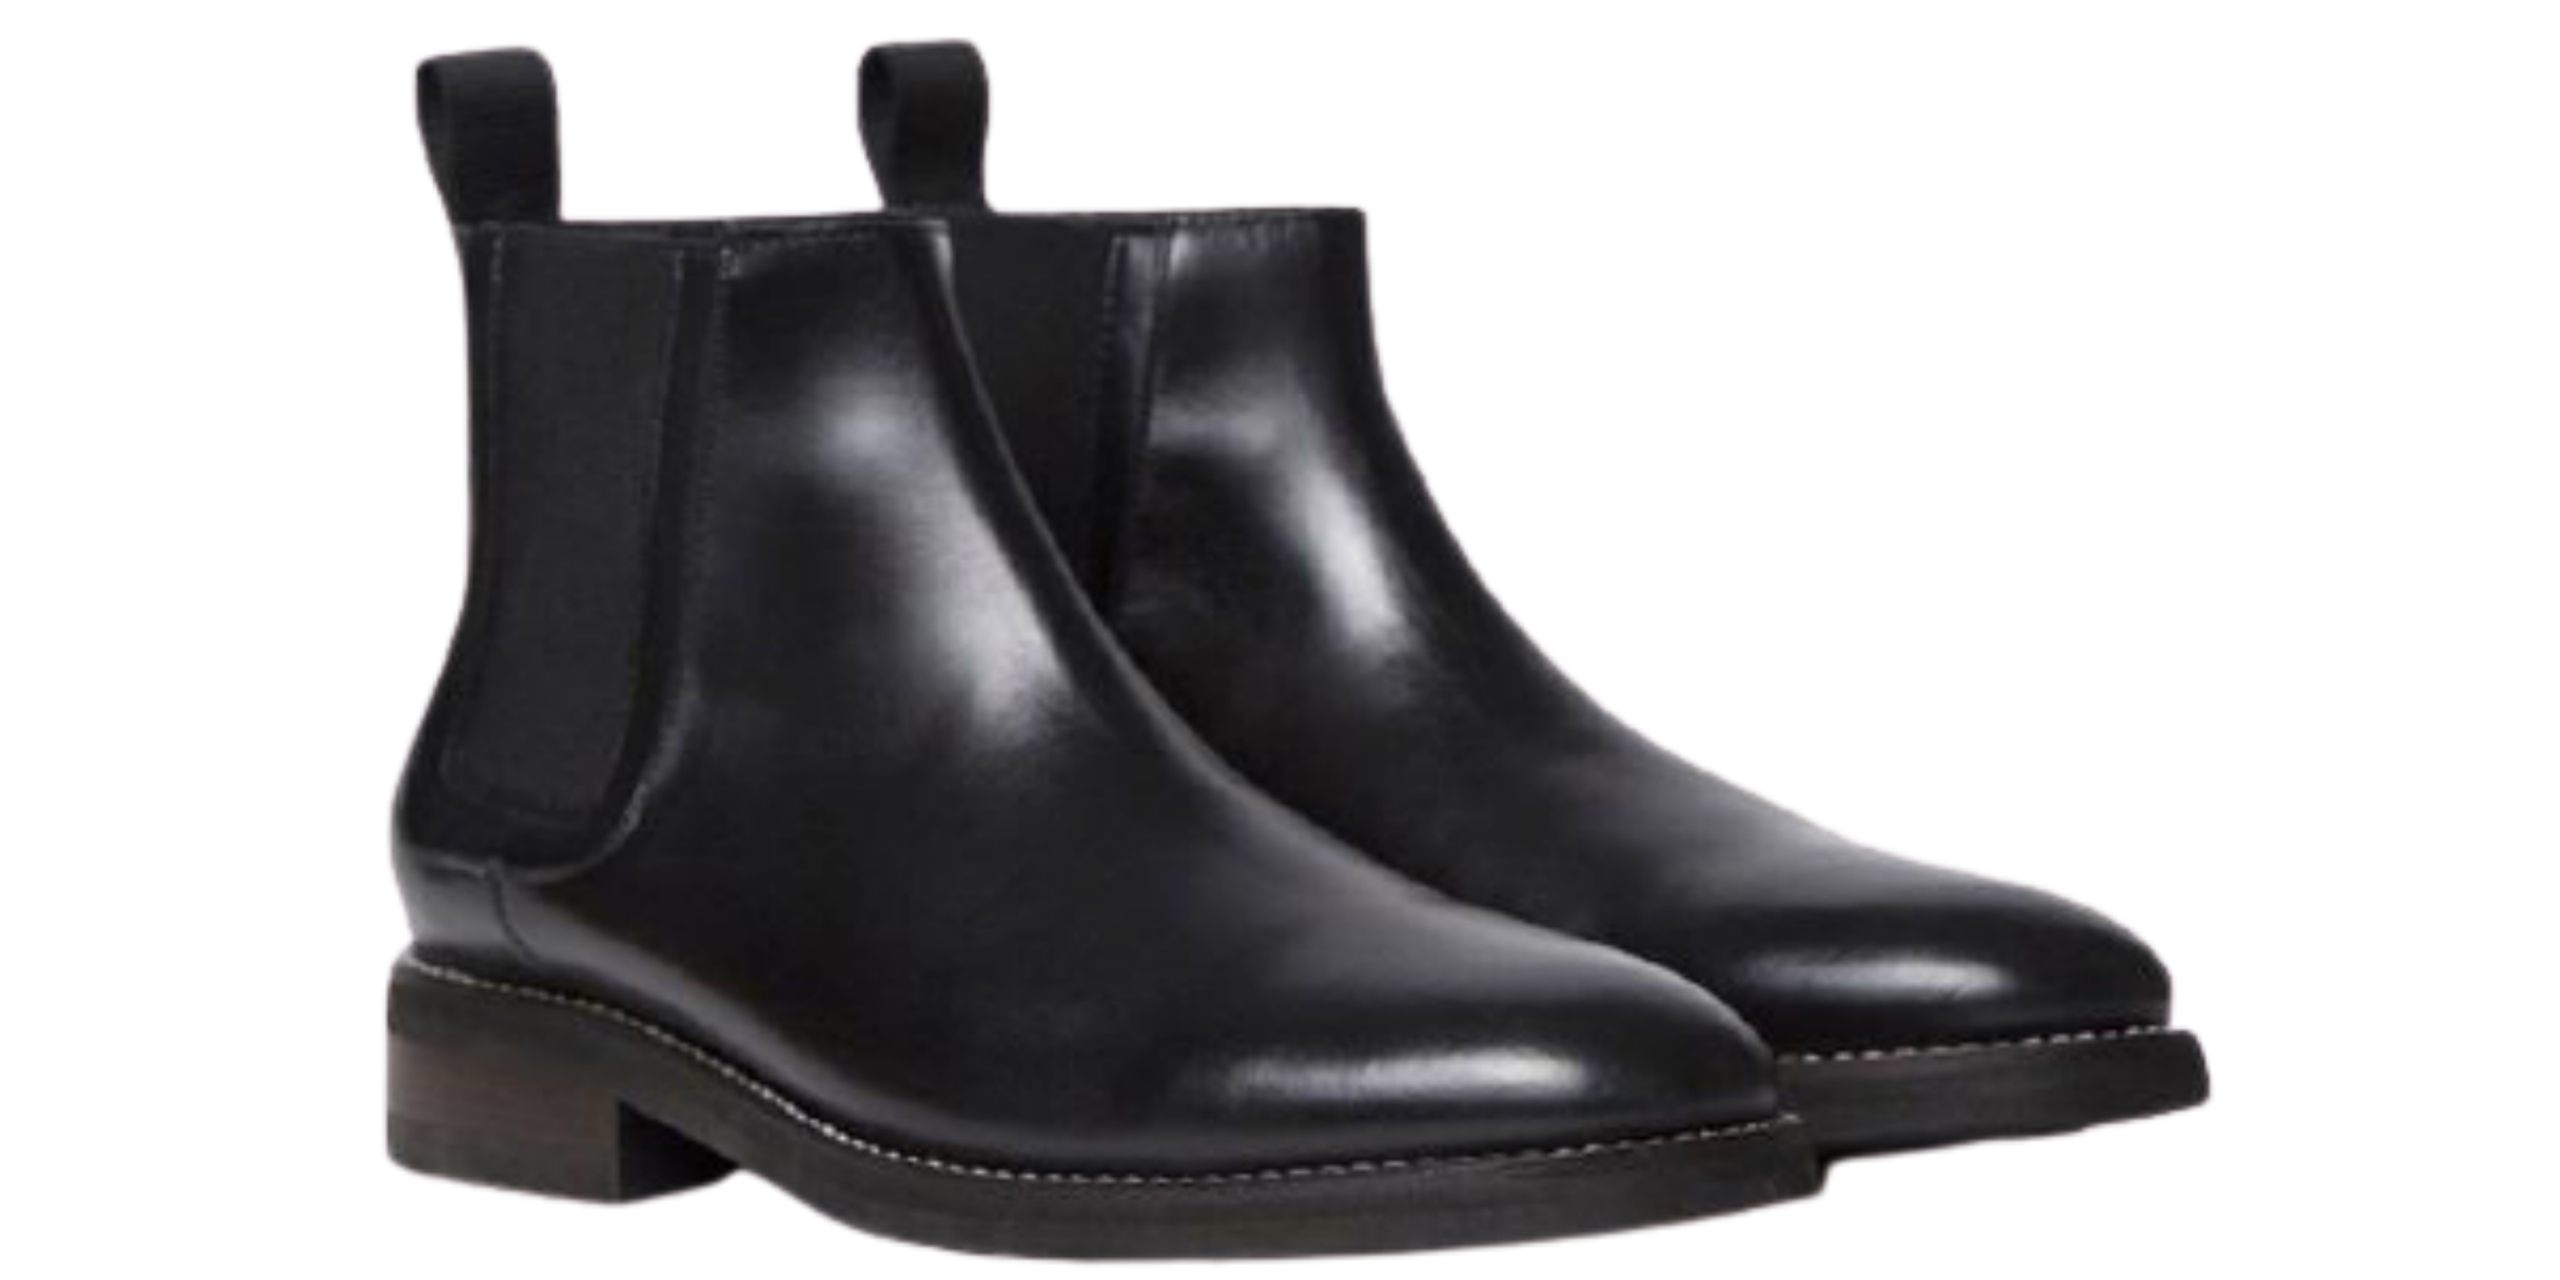 Chelsea Boots - Types of Men's Formal Shoes